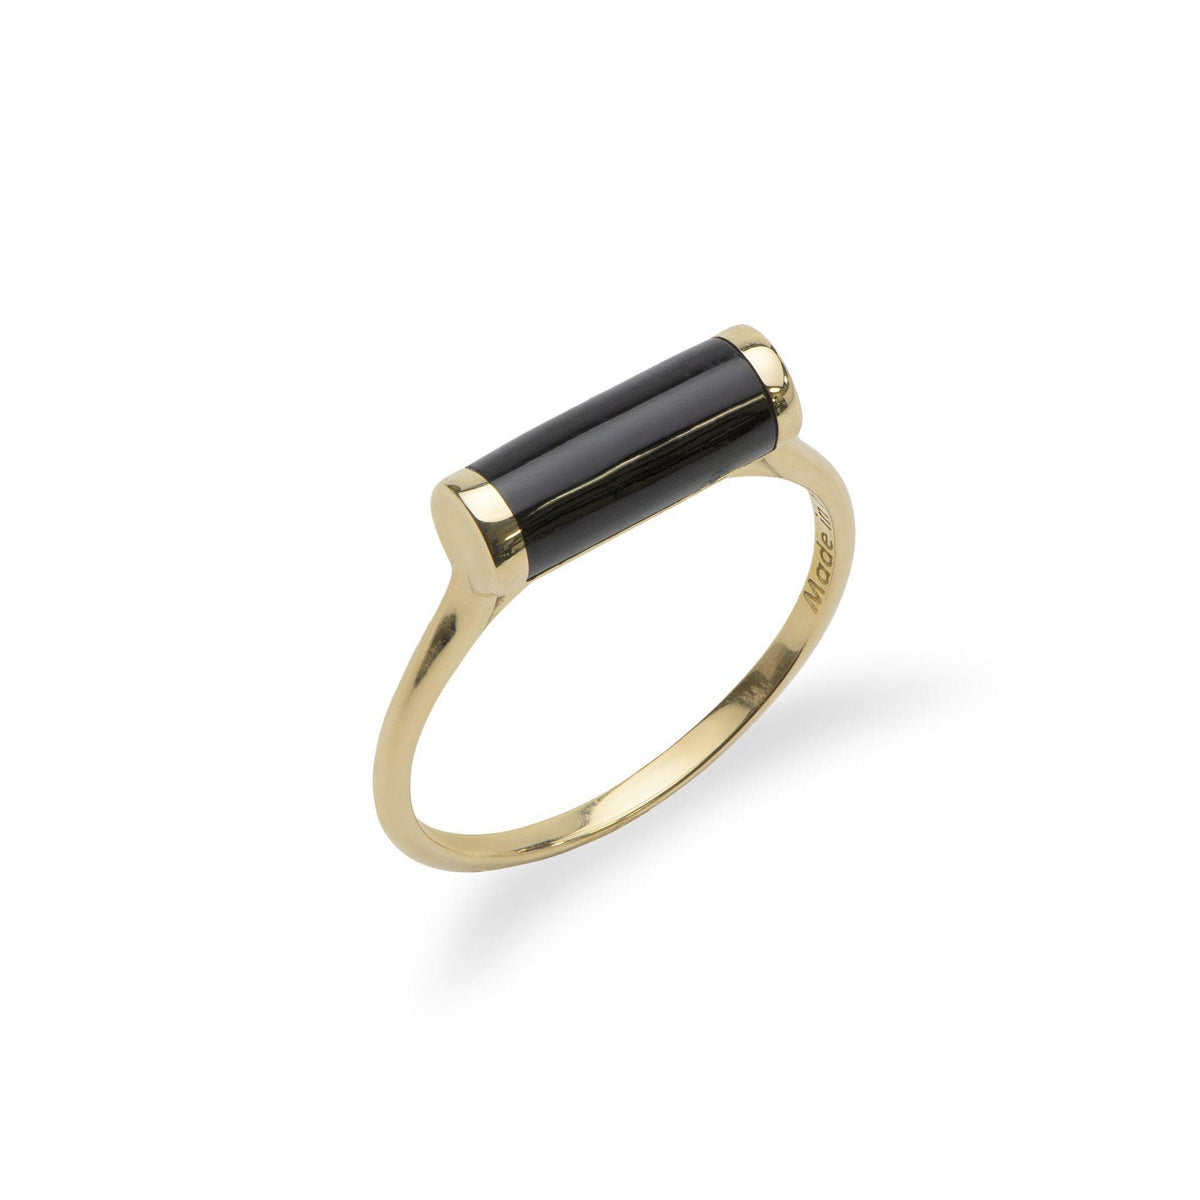 Ocean Chimes Cylinder Ring in 14K Yellow Gold - Maui Divers Jewelry